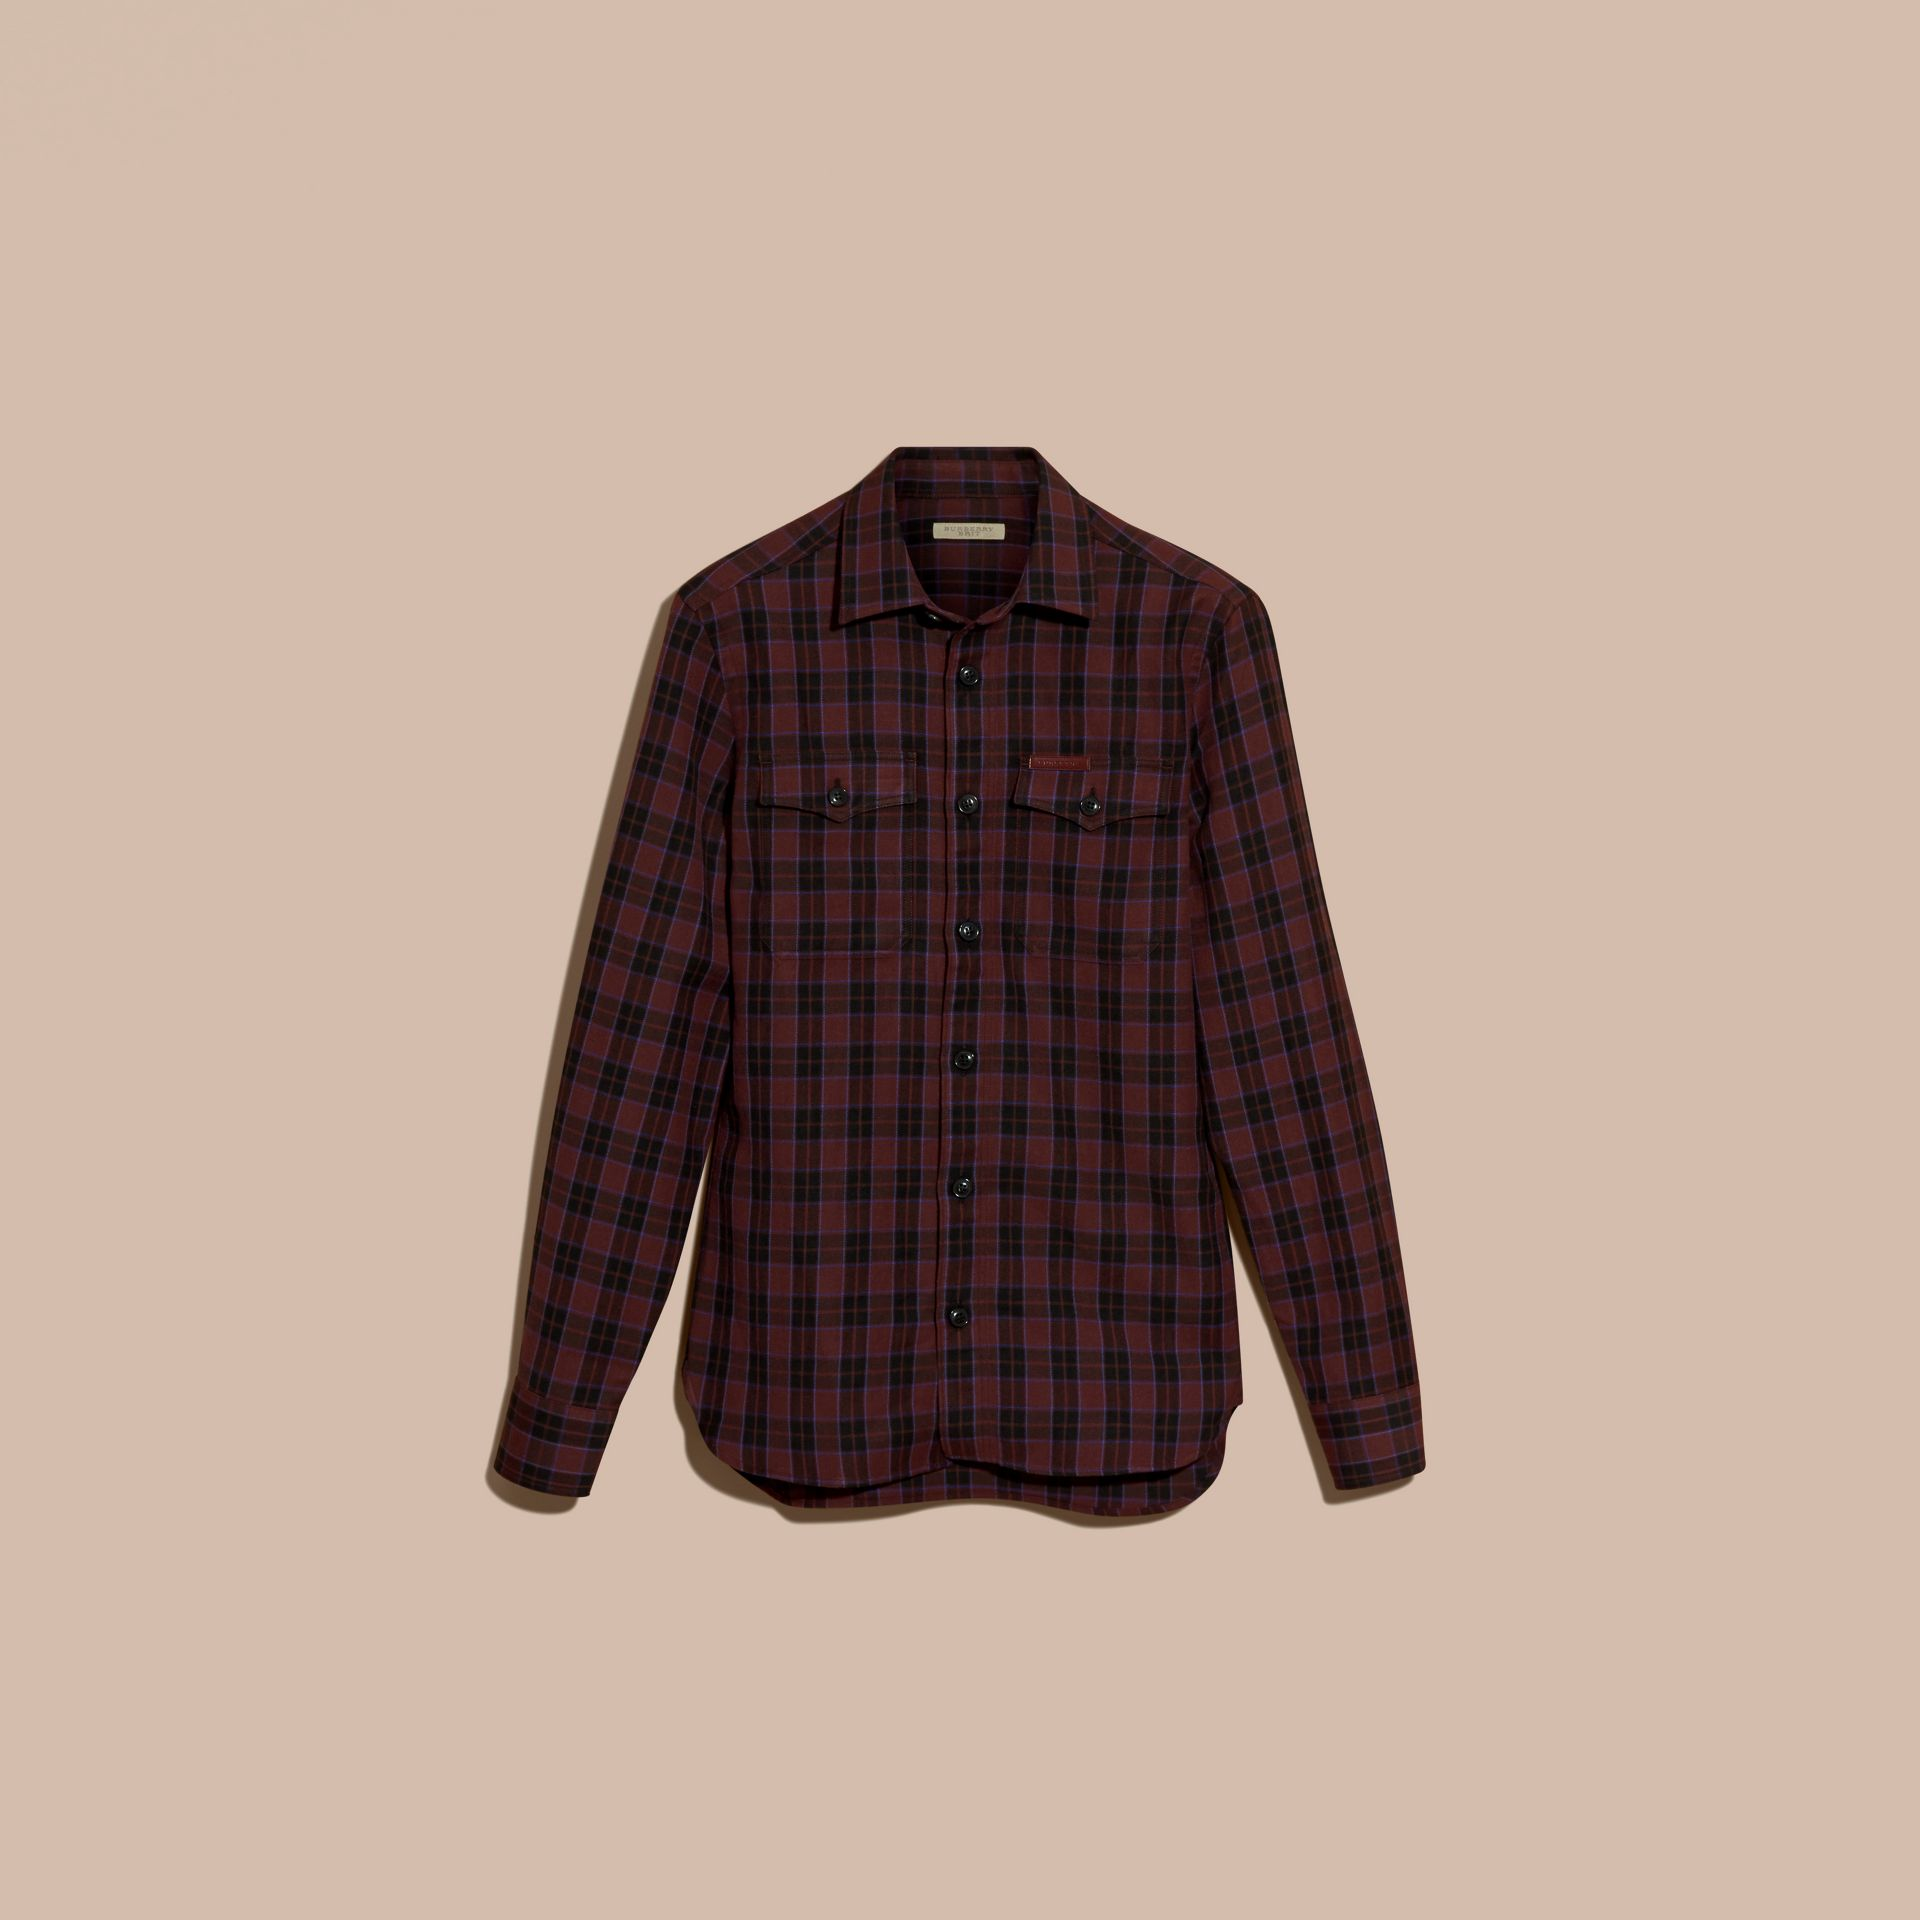 Burgundy red Black Watch Check Wool Blend Shirt Burgundy Red - gallery image 4